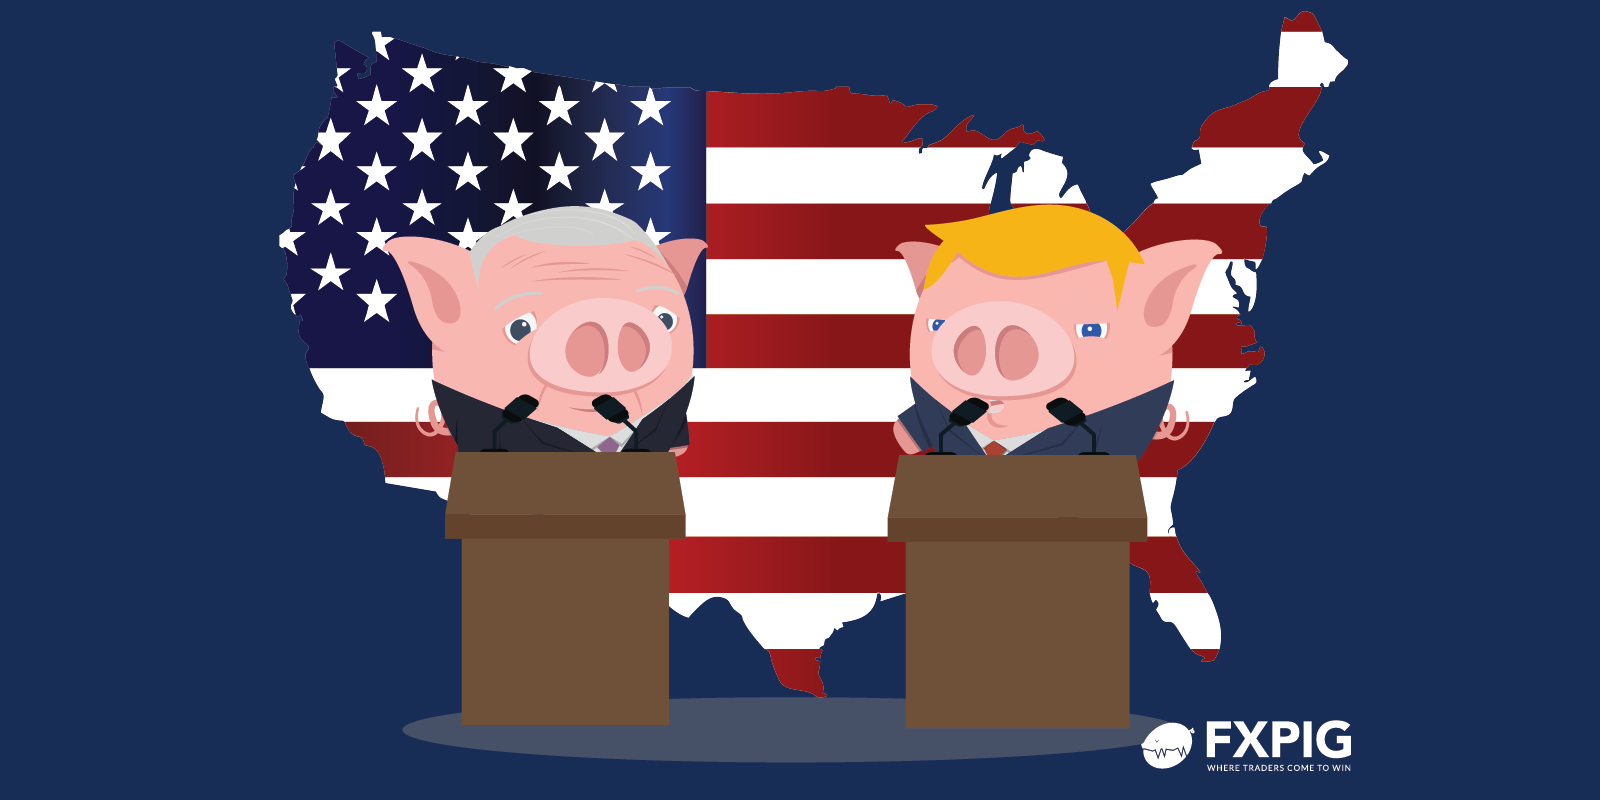 Dollar-rises_presidential-debate_Forex-today_FXPIG